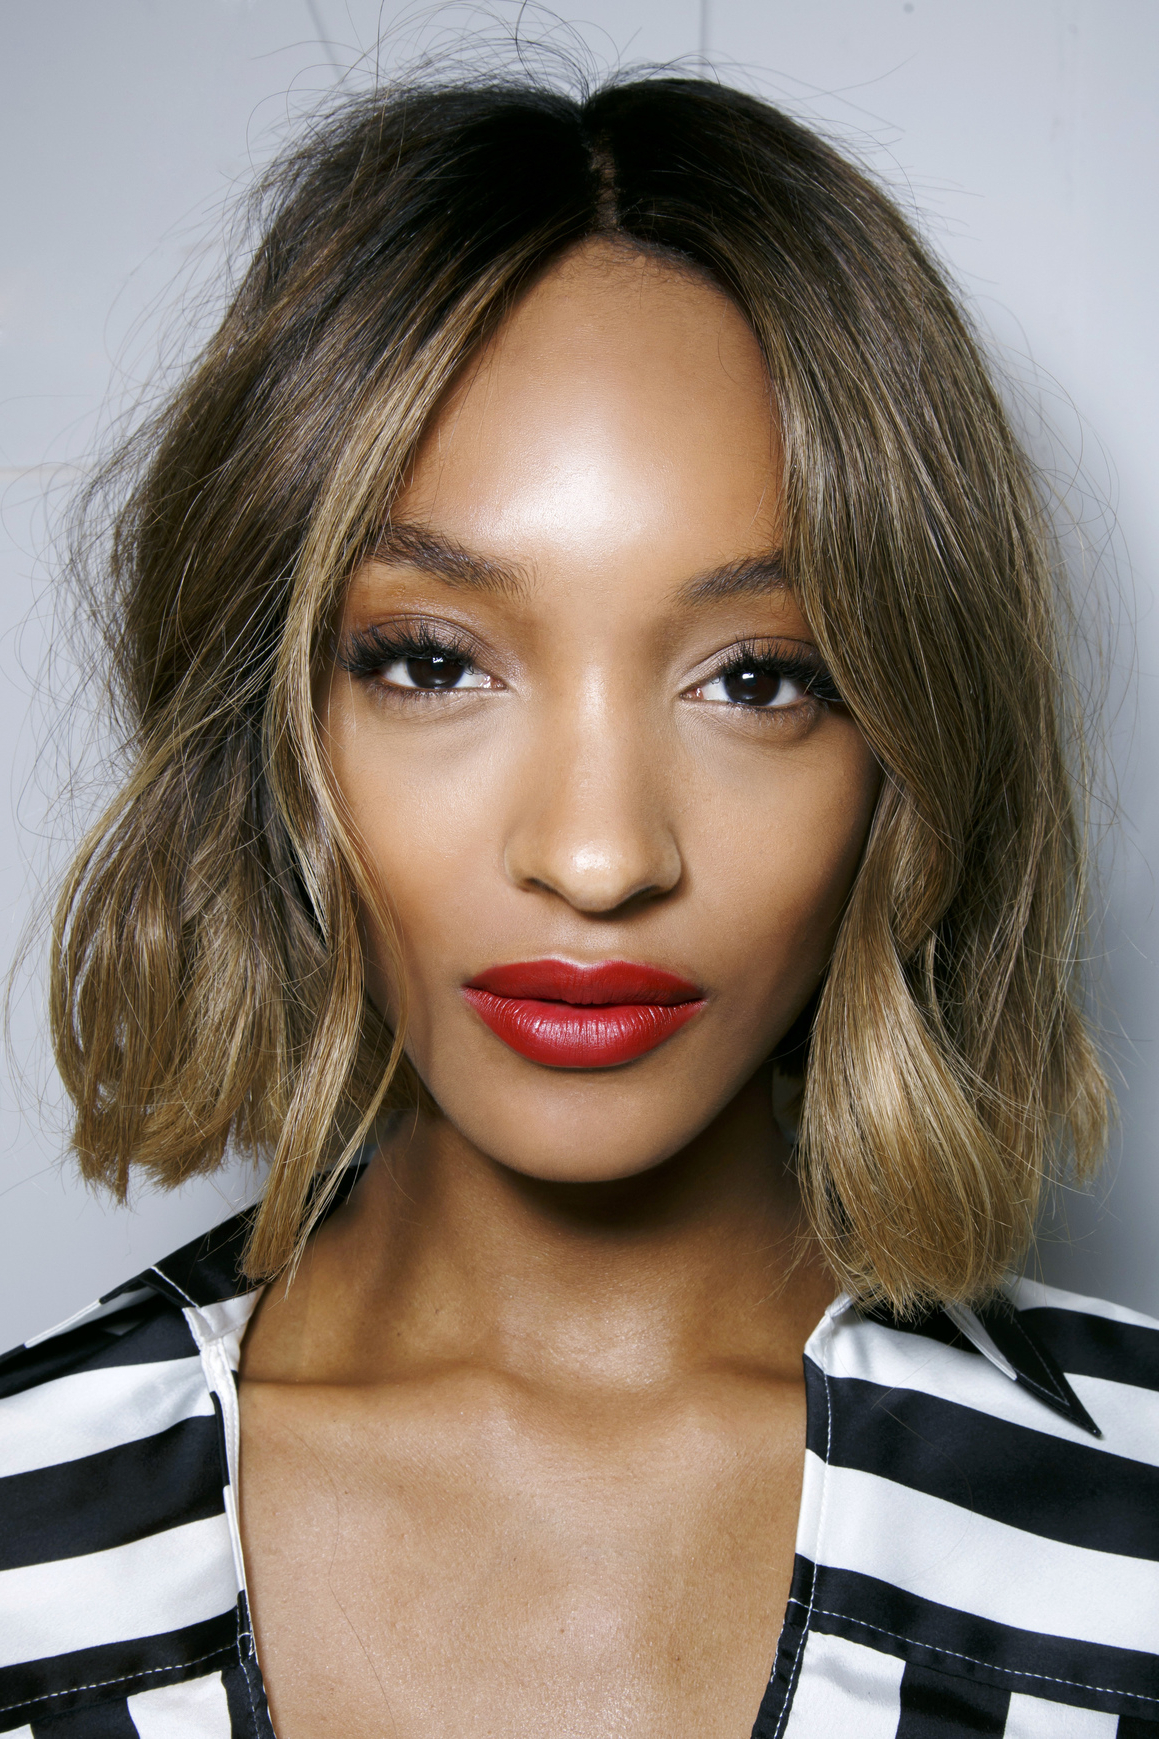 The Very Best Short Haircuts For Winter | Stylecaster Throughout Long Curly Salt And Pepper Pixie Hairstyles (View 17 of 20)